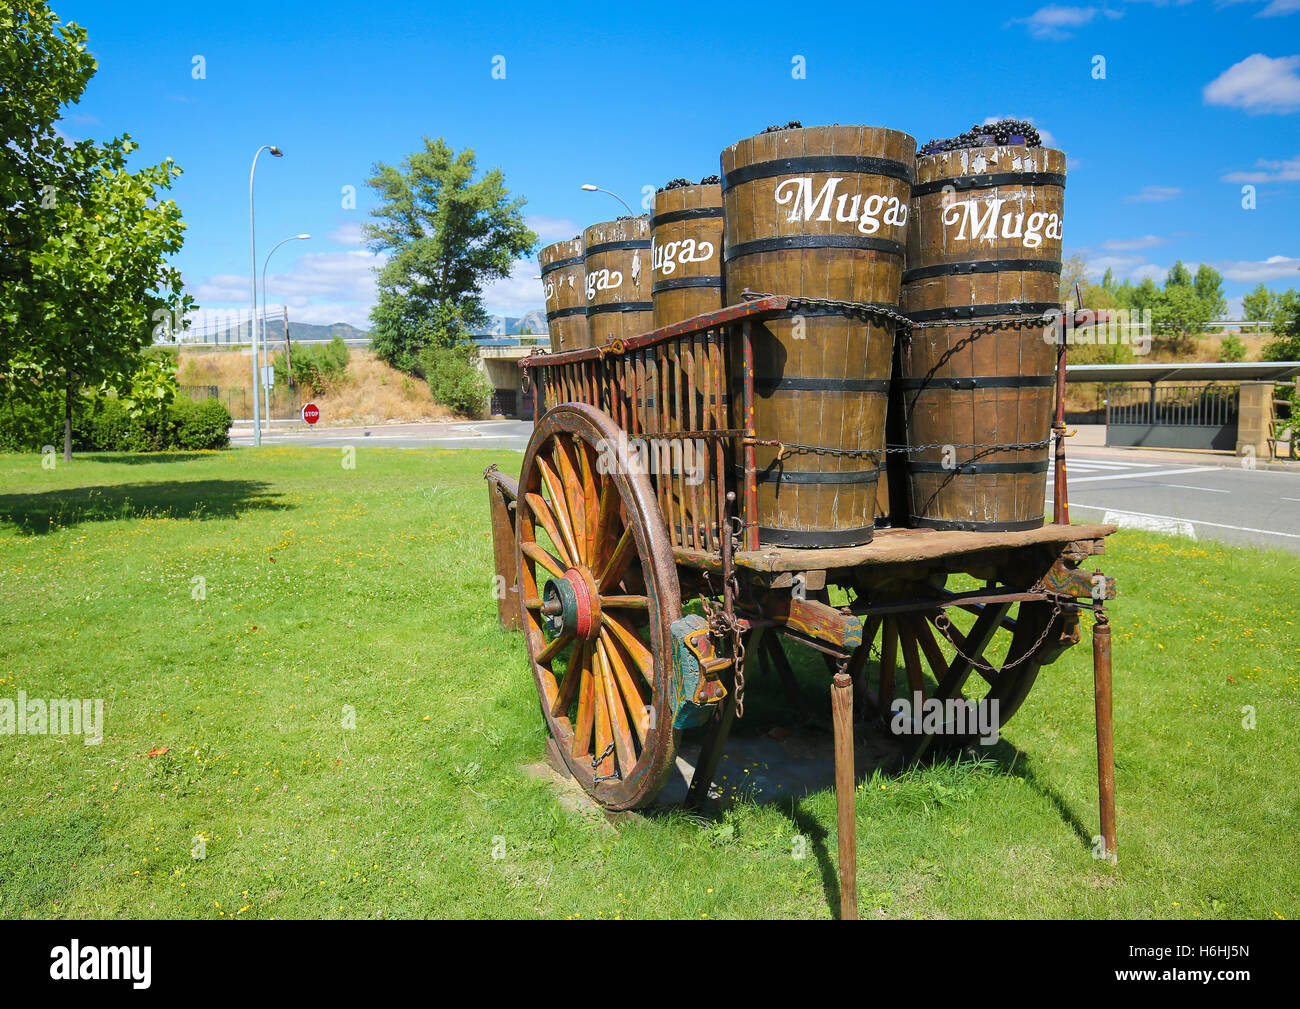 Wooden cart with grapes at Bodegas Muga, a Spanish winery based in Haro, in the Rioja Alta region. - Stock Image